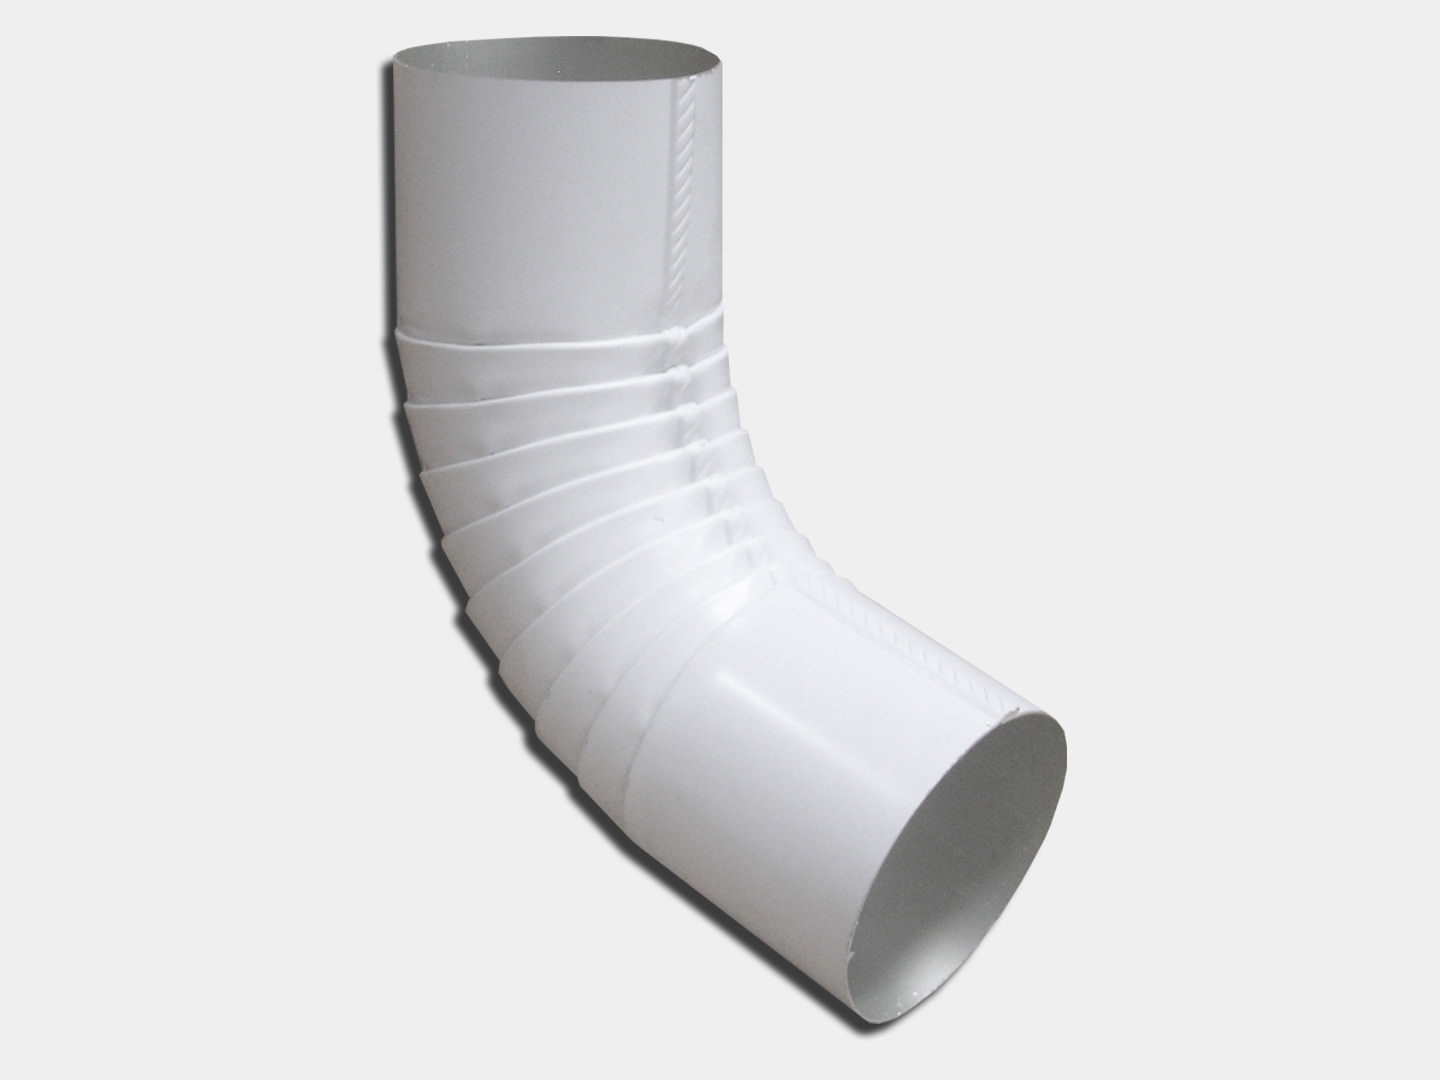 Plain round white aluminum elbow for downspout